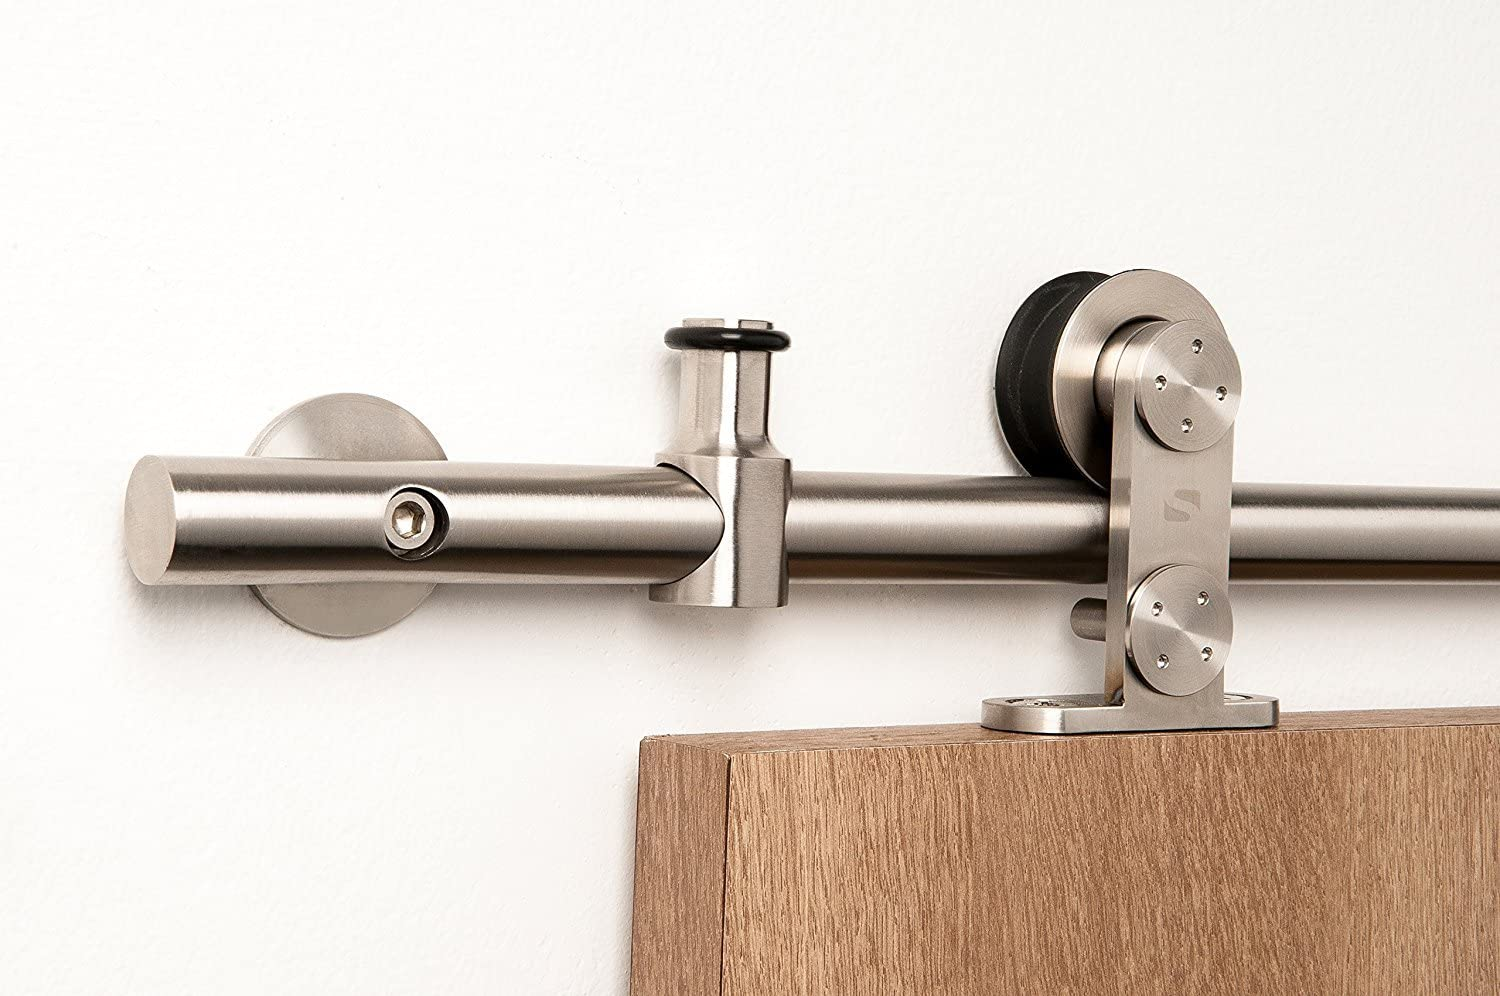 STRONGAR Contemporary Stainless Steel Sliding Hardware Barn Max 85% OFF Quantity limited Door